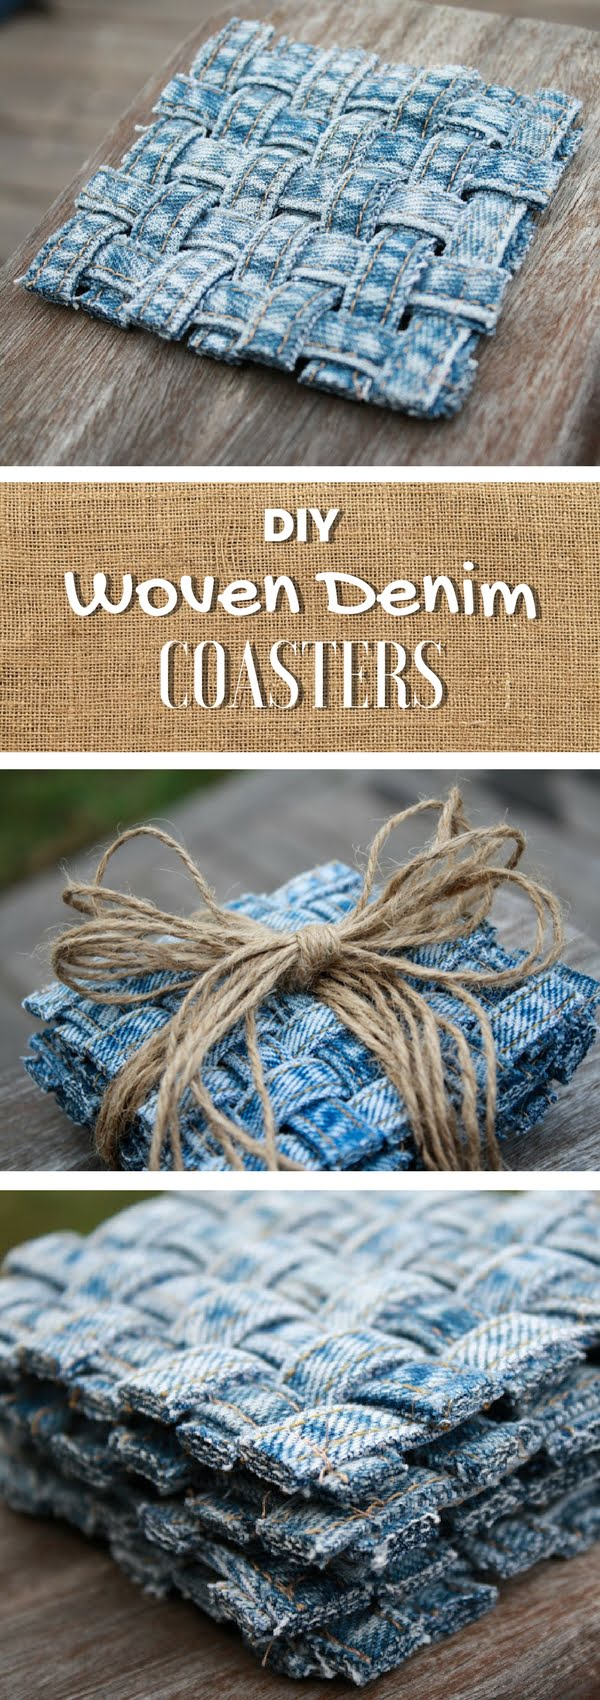 Check out the tutorial on how to make a decorative DIY coaster from old jeans